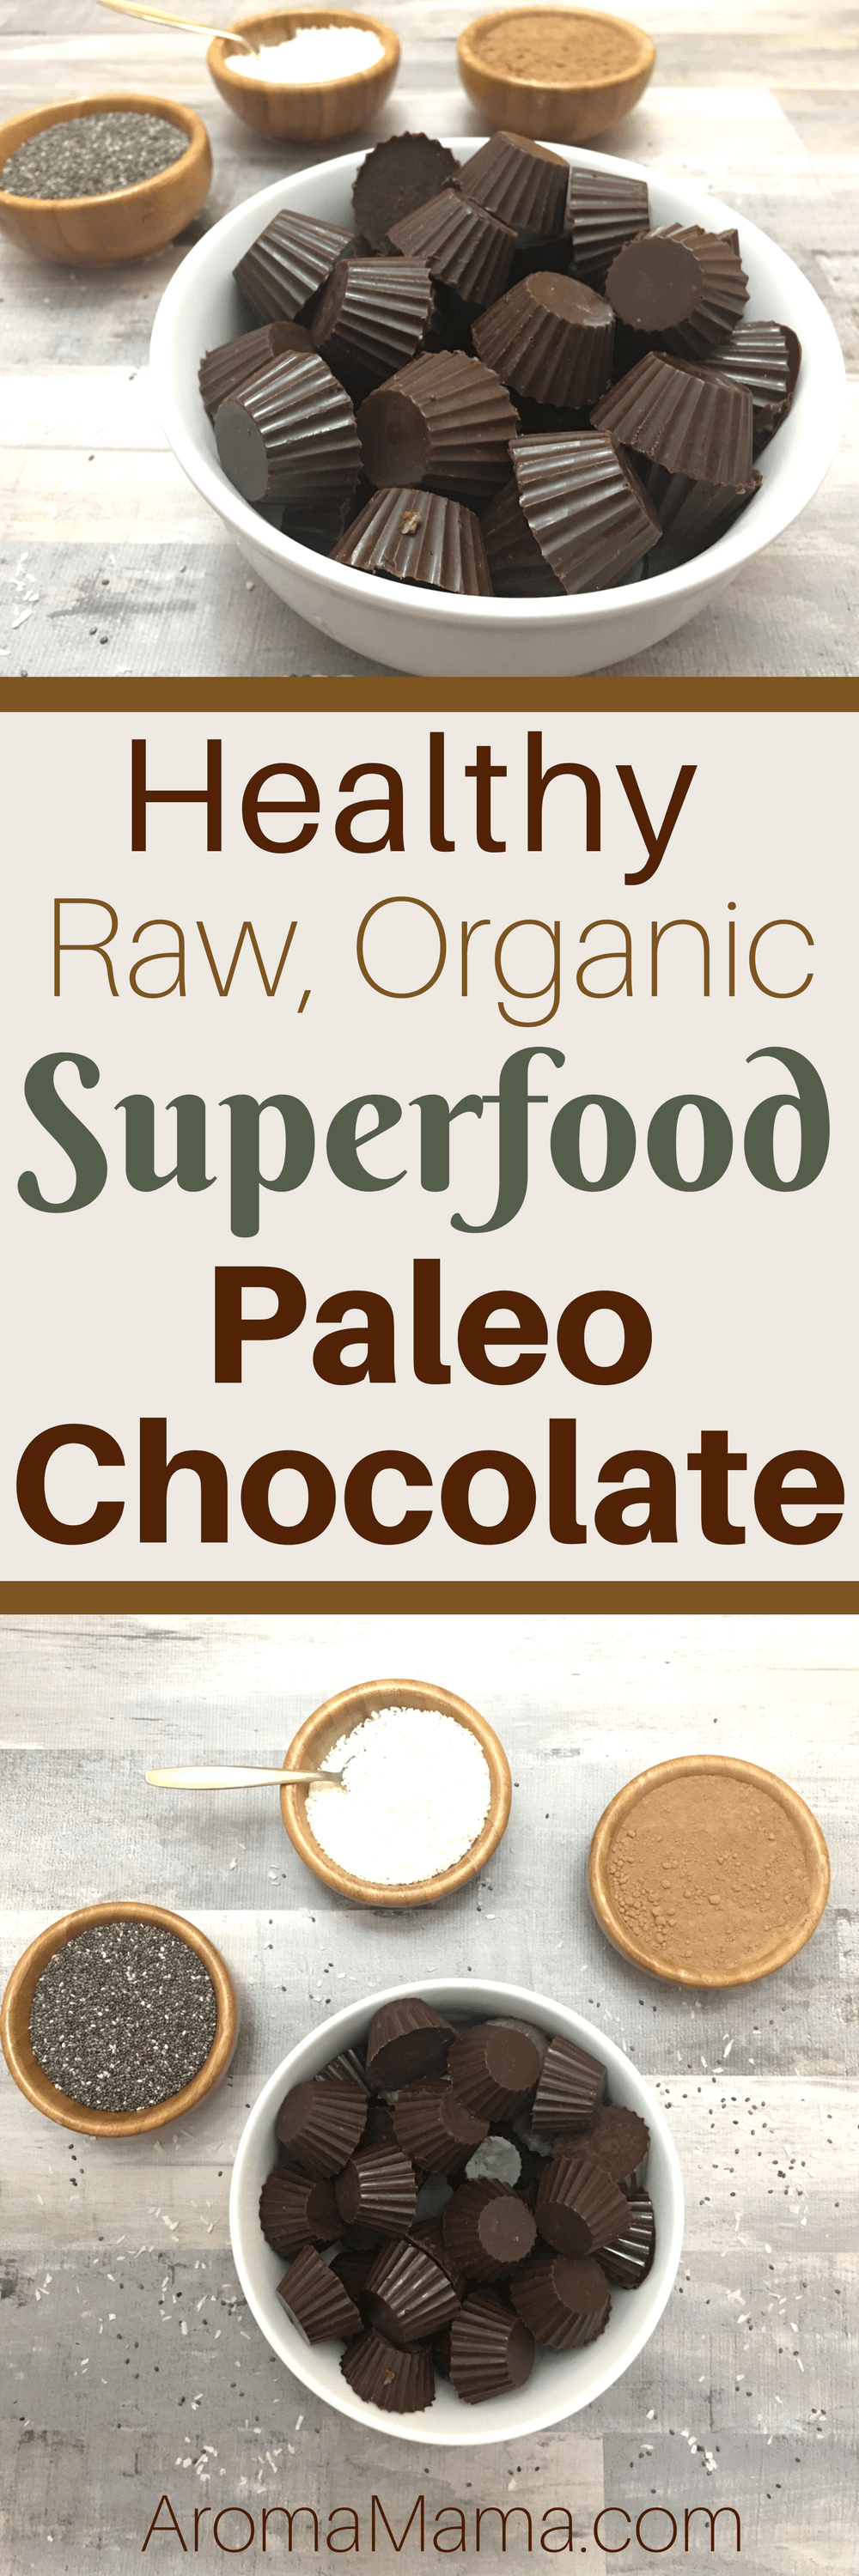 These Superfood Paleo Chocolates are healthier than a snack bar, but taste like a dessert! They are healthy, raw, and organic!